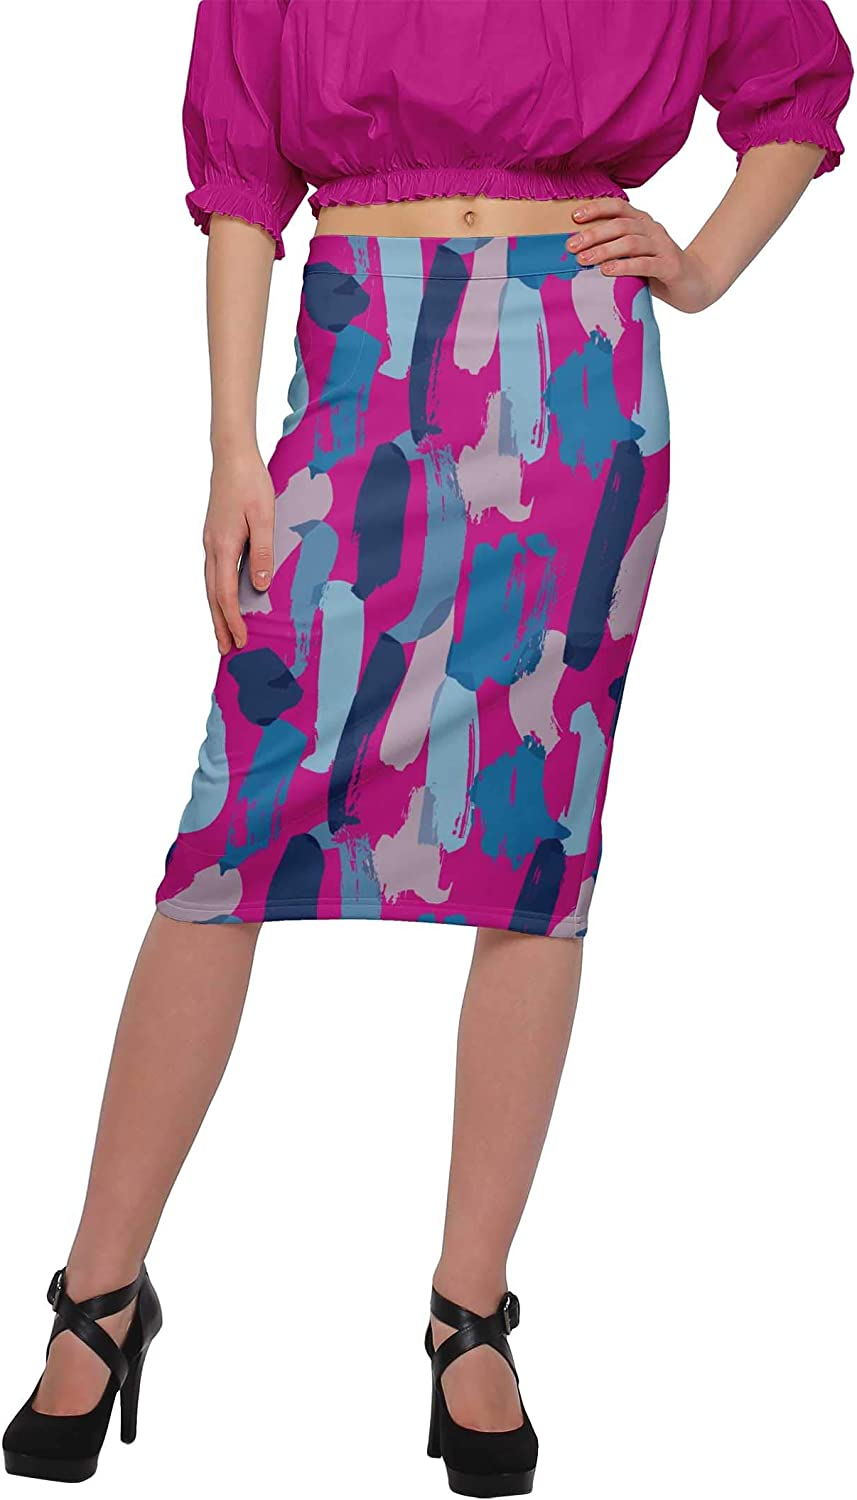 Moomaya Skirts for Women Knee Length Poly Spandex Casual Wear Summer Clothing